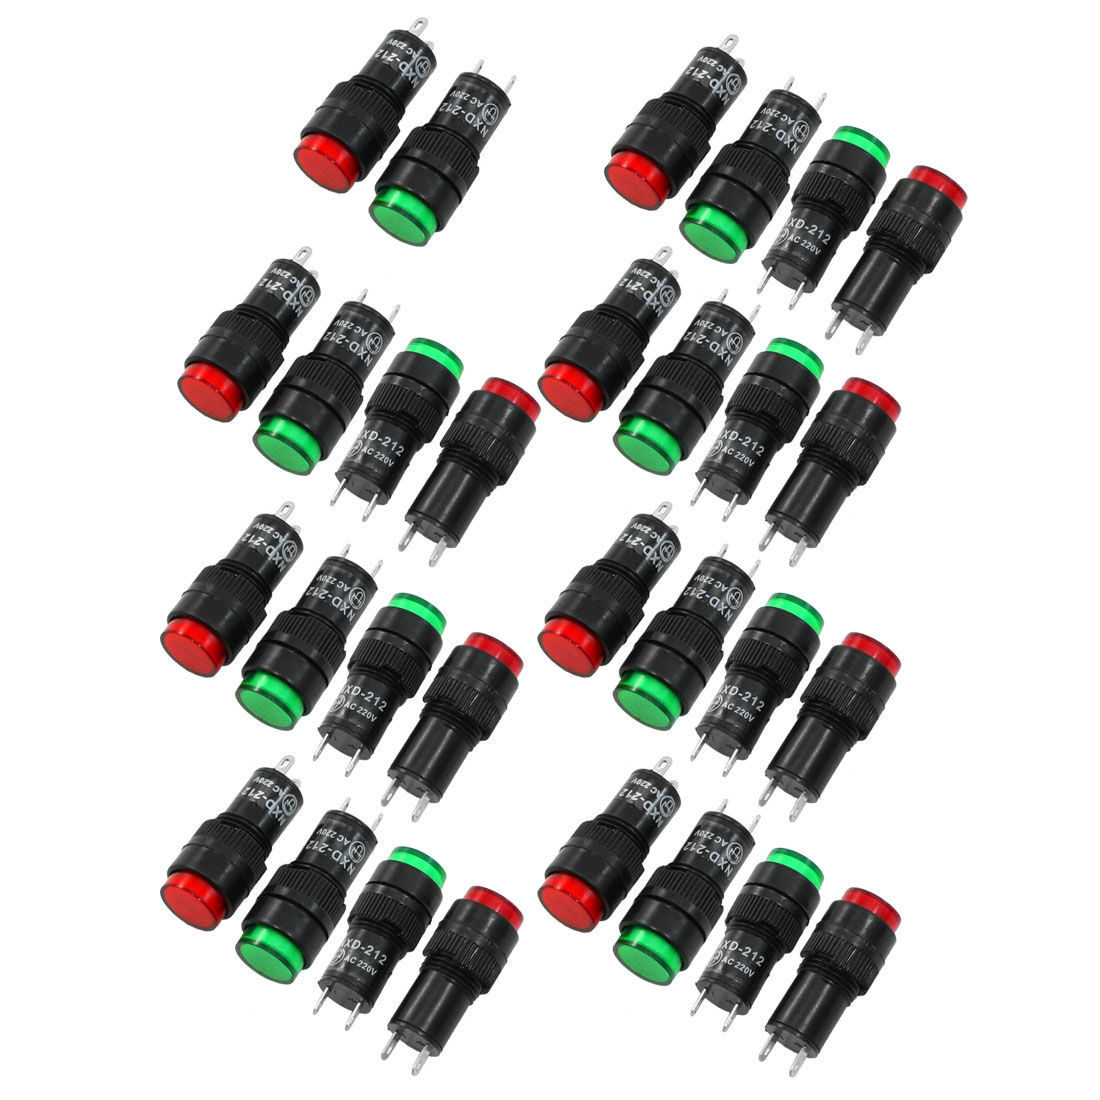 30 Pcs 2 Terminals Panel Mount AC220V Indicator Light Red Green